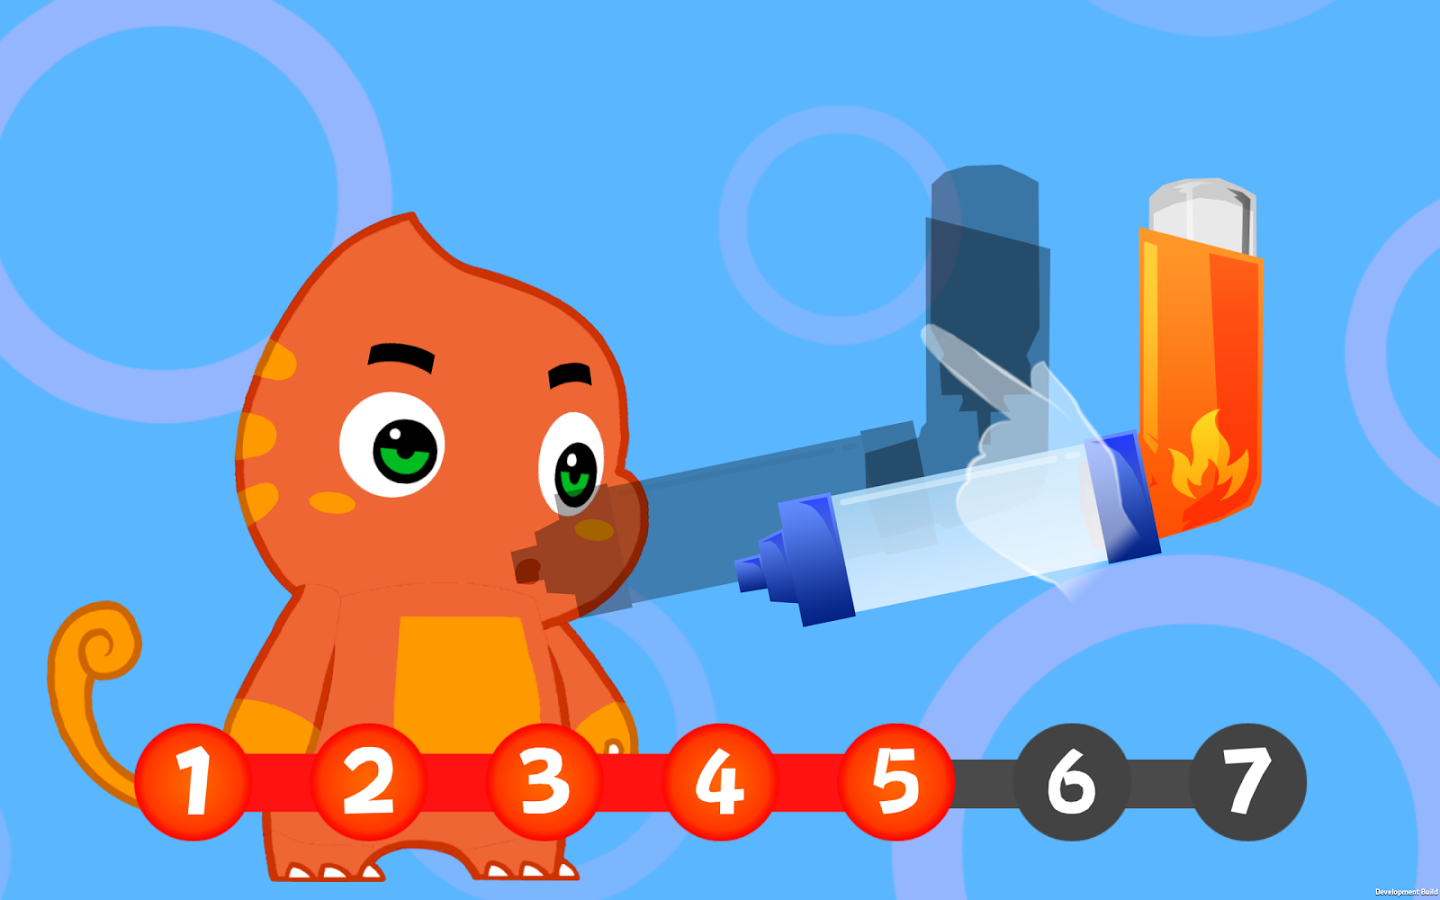 A virtual pet dragon with an inhaler teaches kids how to manage asthma in Wellapets' new app